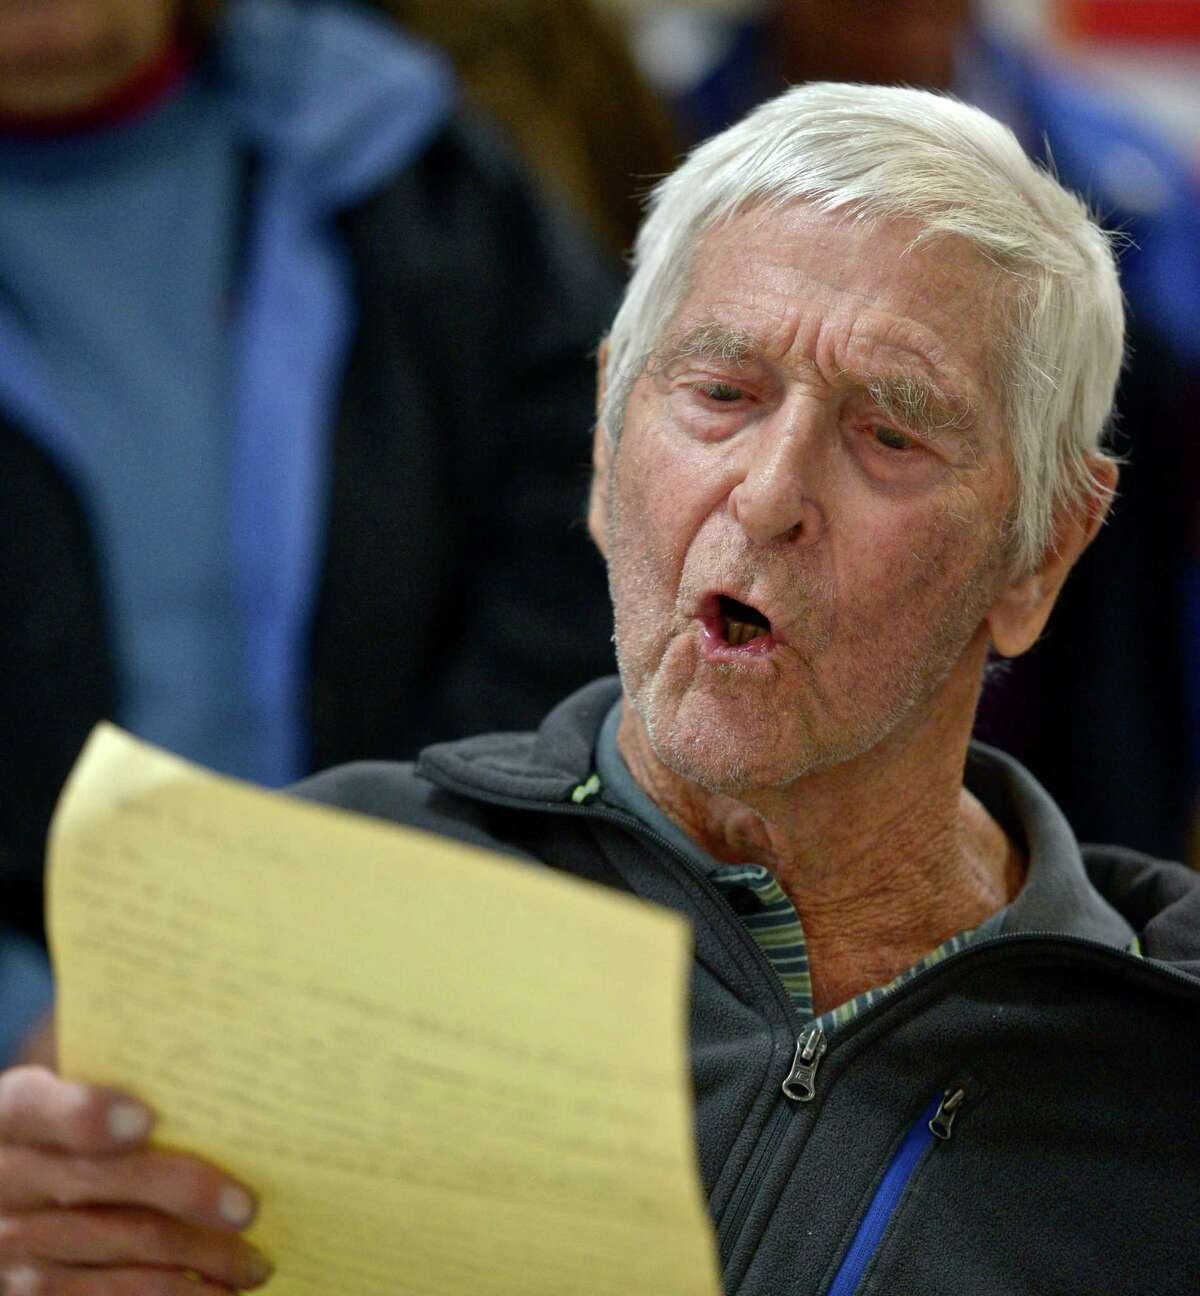 """Francis Hill, 92, of New Milford, sings """"America the Beautiful"""" during the New Milford Veterans Day Memorial Service, which was held at VFW Post 167211, on Avery Road, in New Milford, at 11 a.m. on November 11, 2015."""